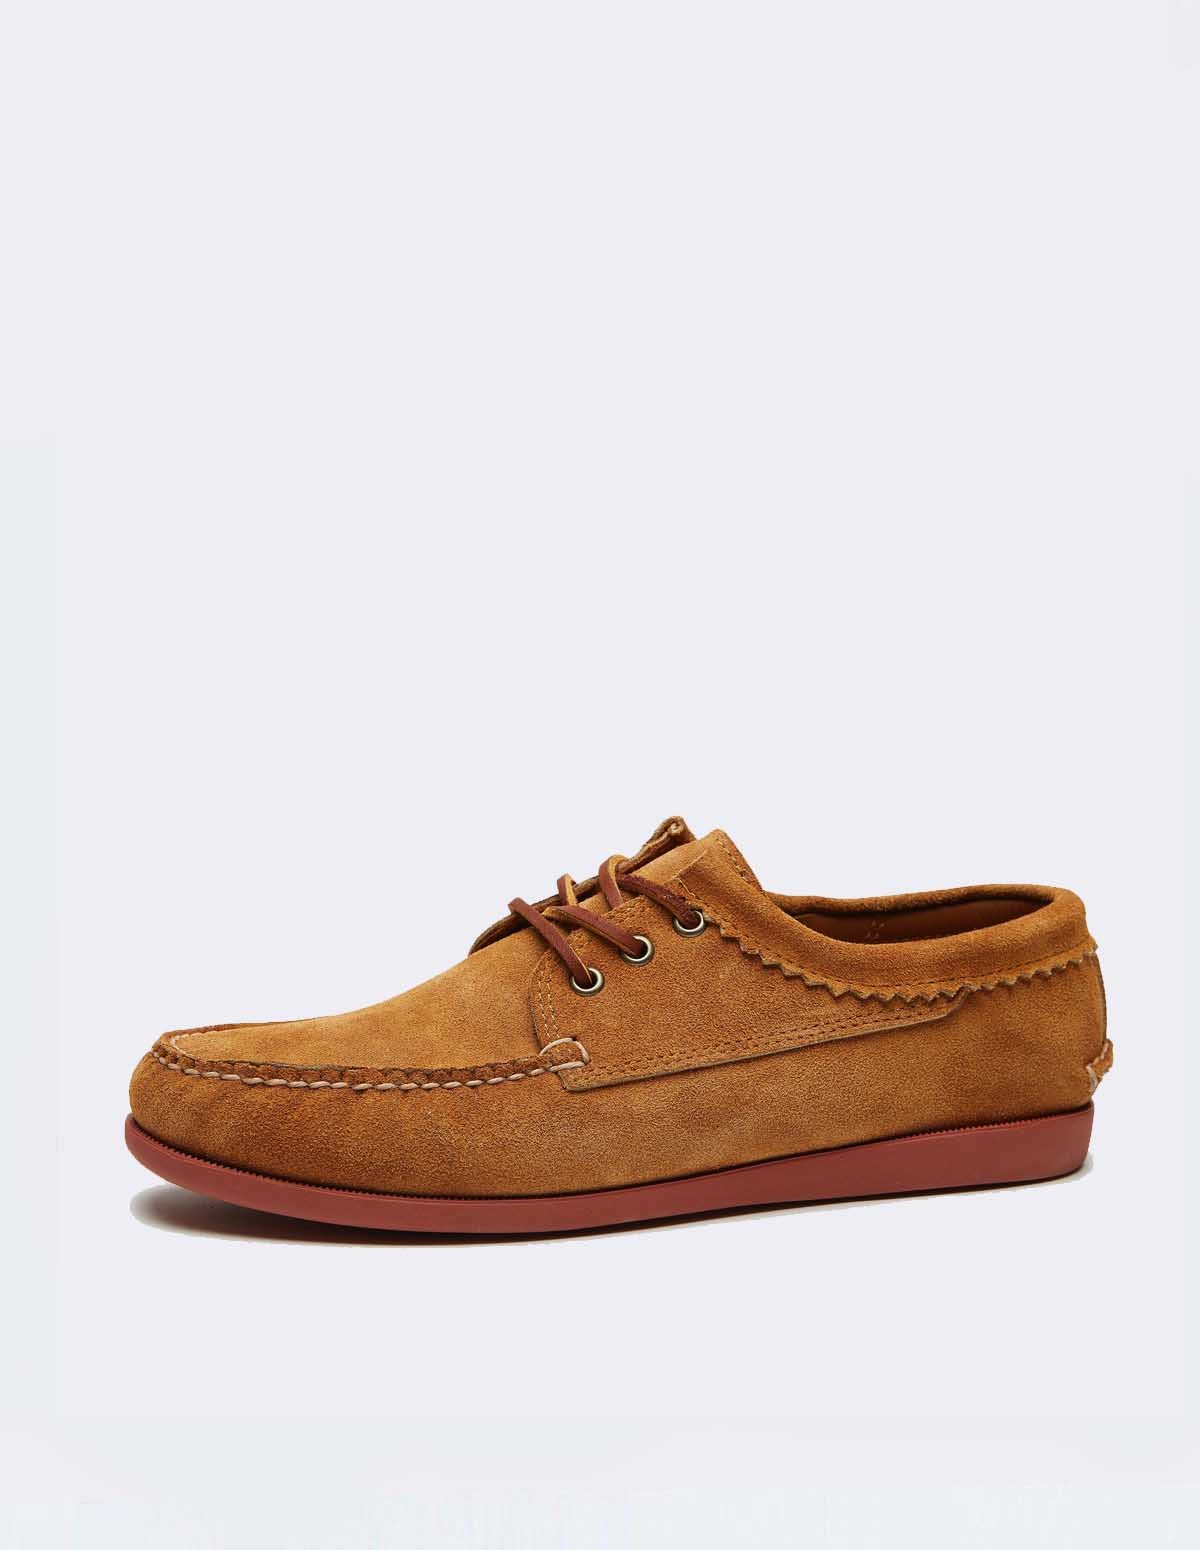 Quoddy Blutcher Suede - TOAST / BRICK SOLE